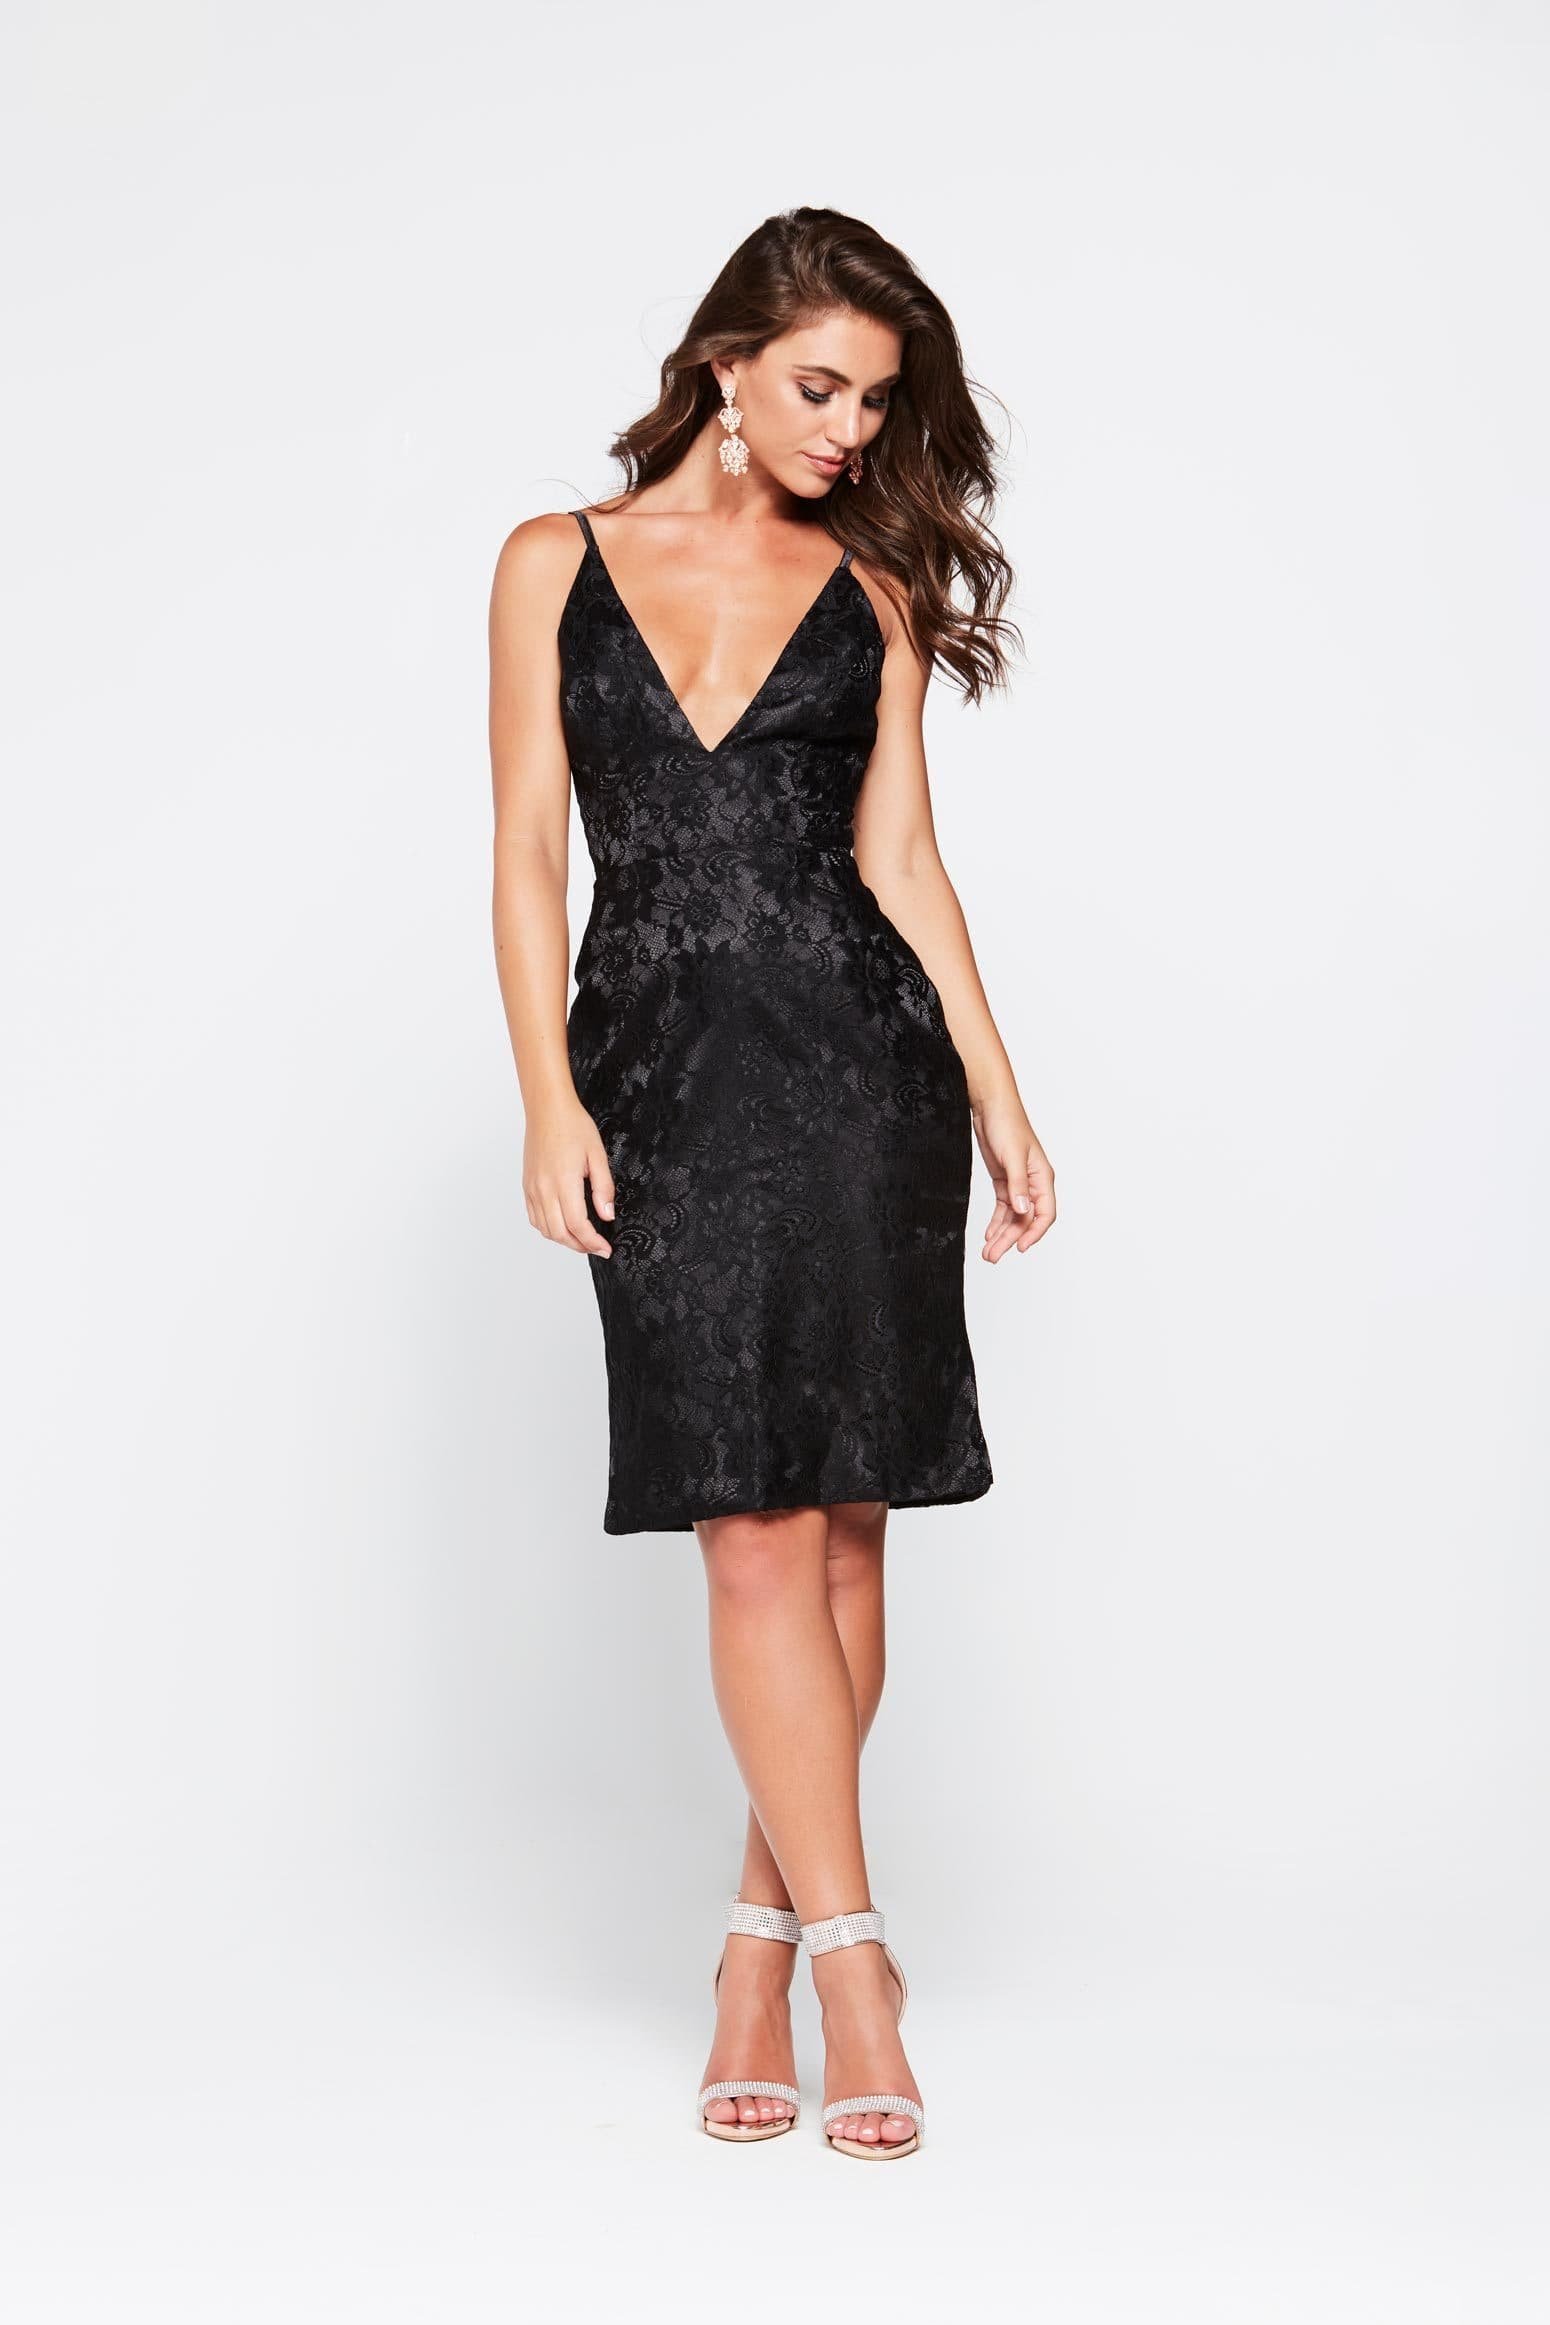 A&N Lea- Black Lace Cocktail Dress with V Neck and Low Back